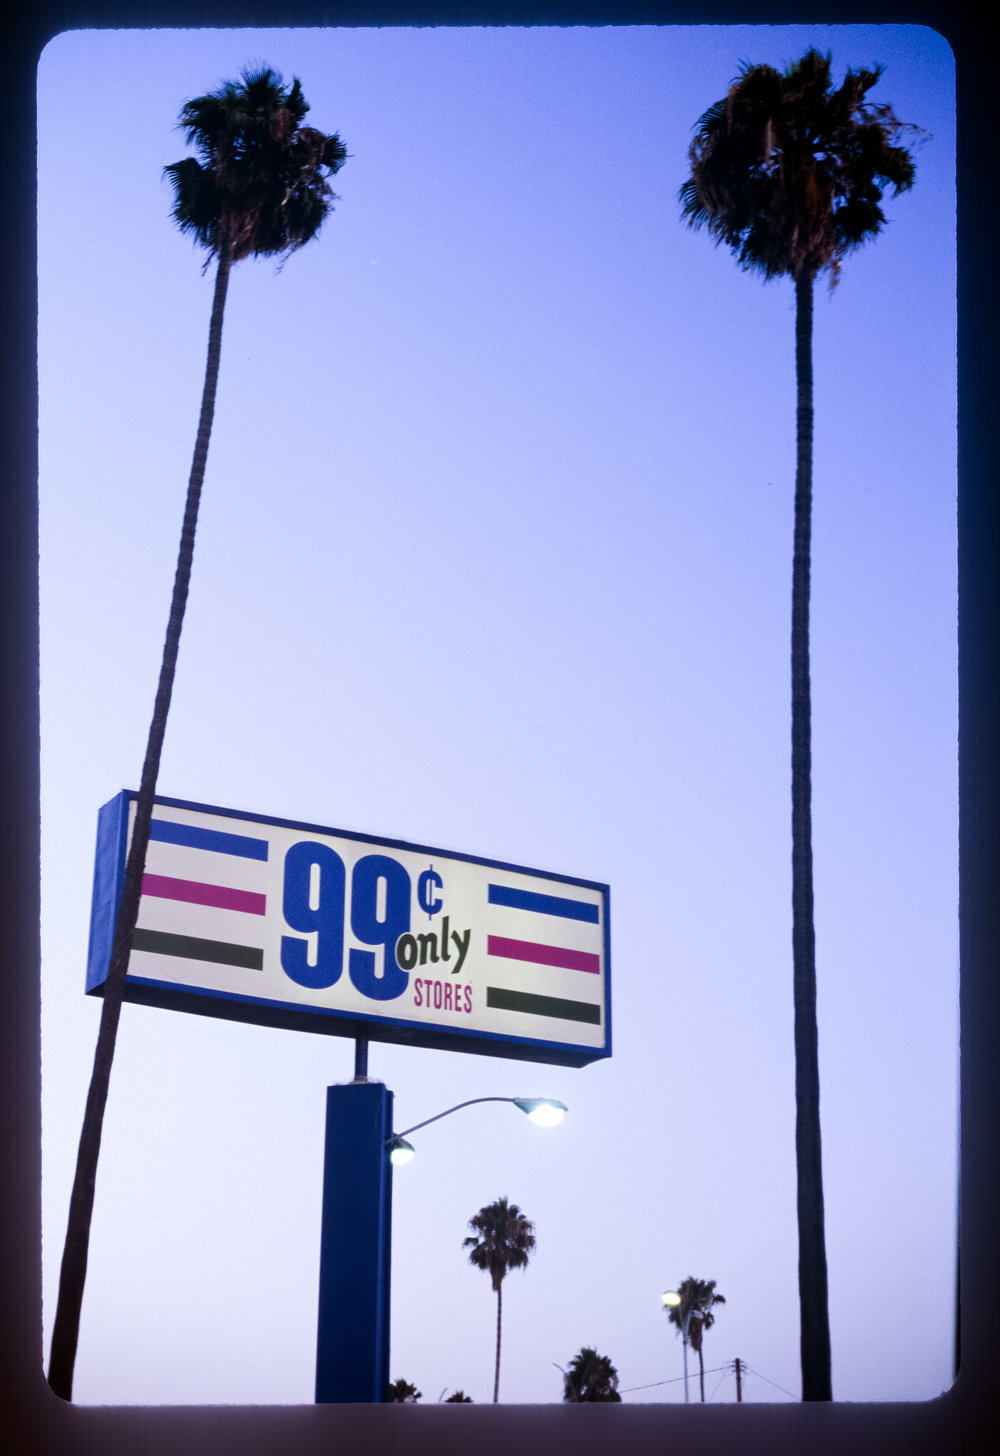 99 Cents Only 2013 Archival fine art print from 35mm slide, 39.6 x 27 in